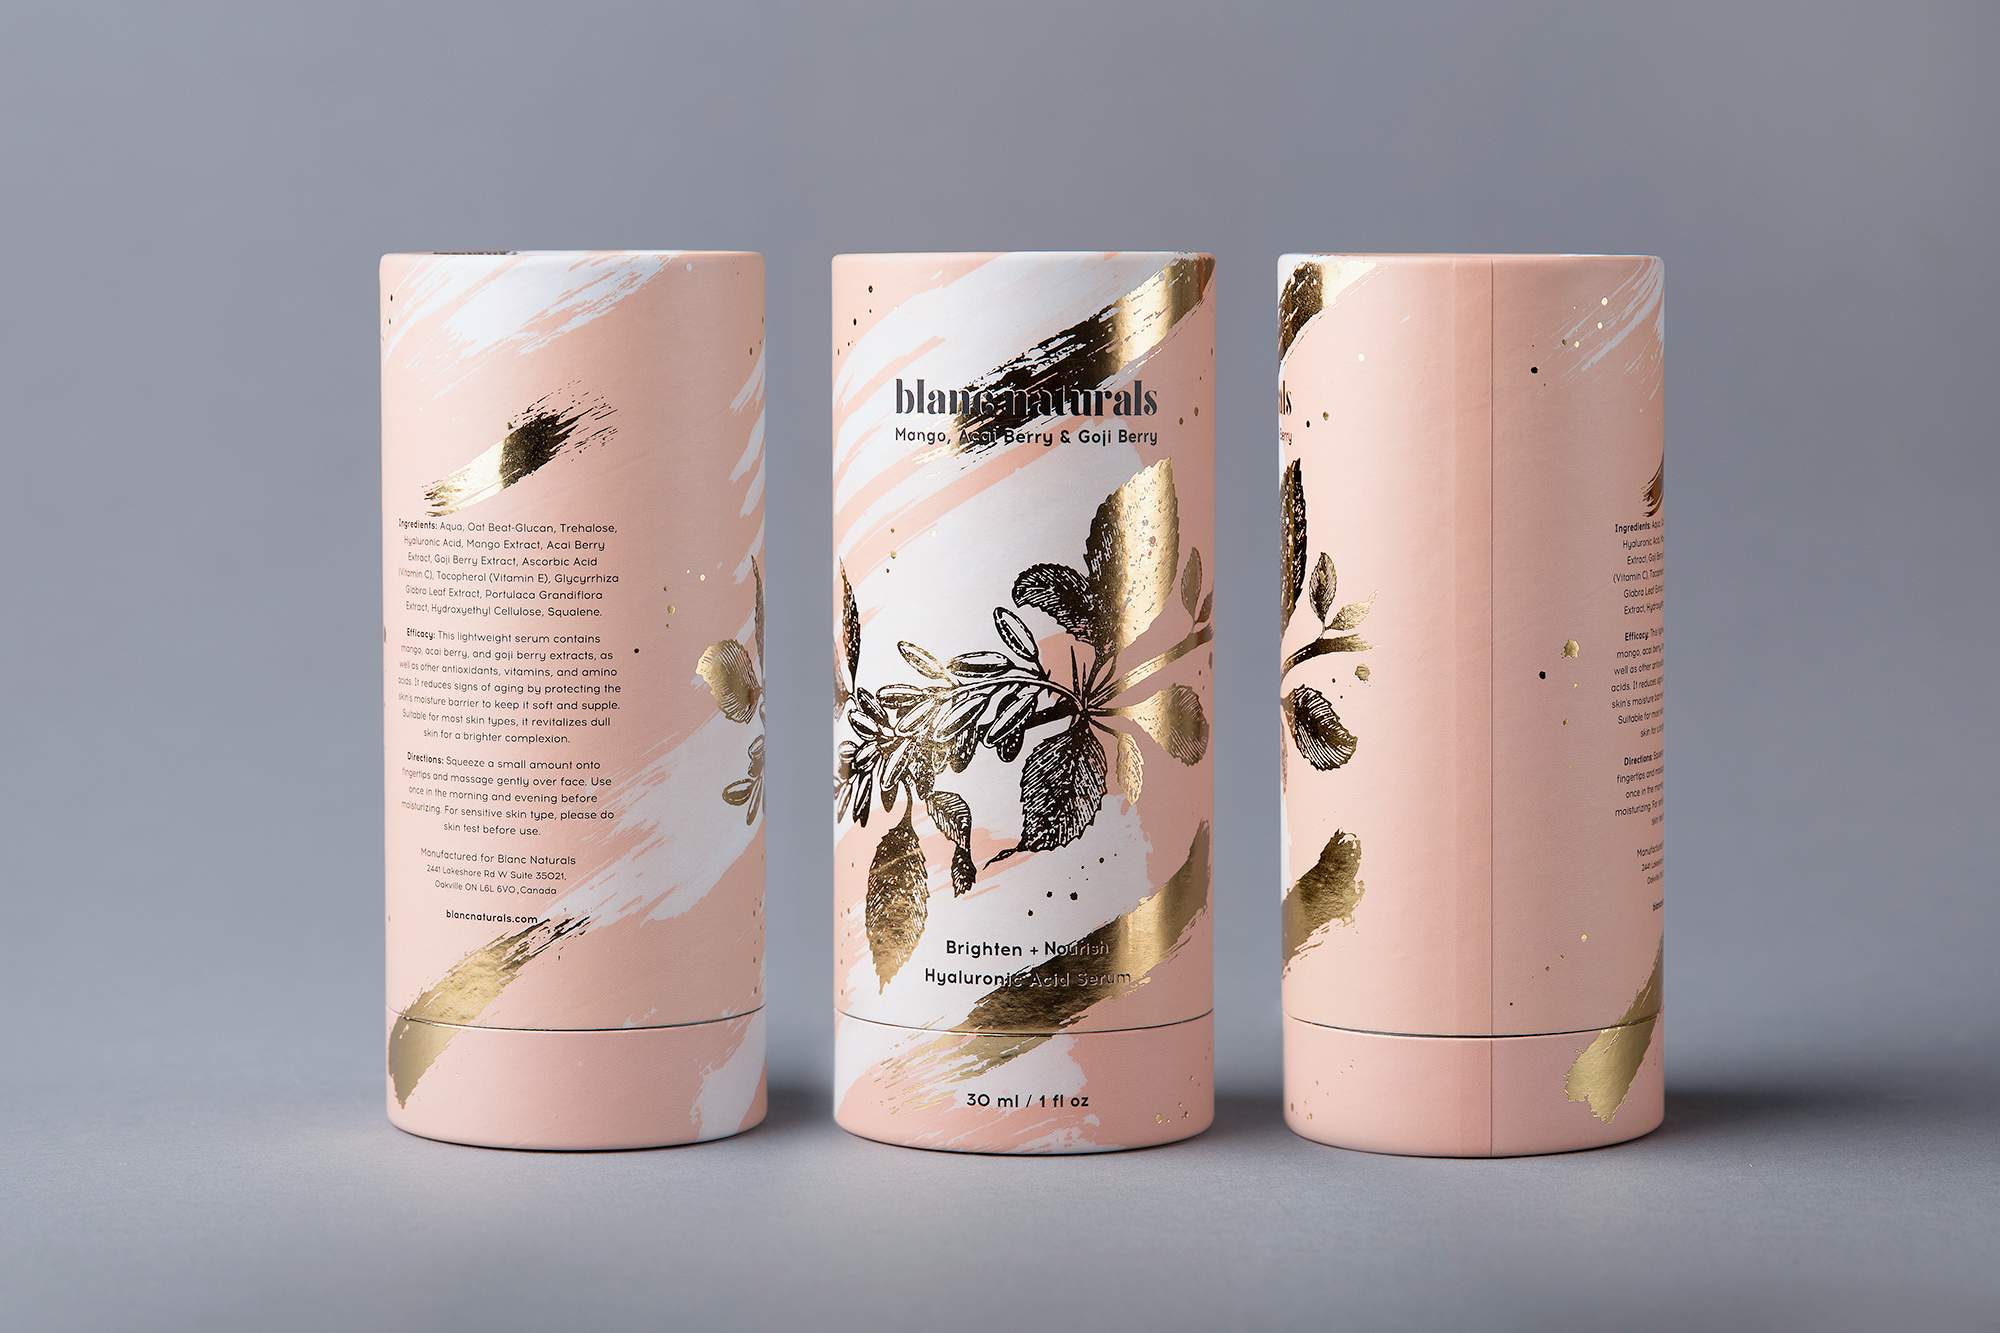 Blanc Cosmetics Packaging Design by Foxtrot Studio